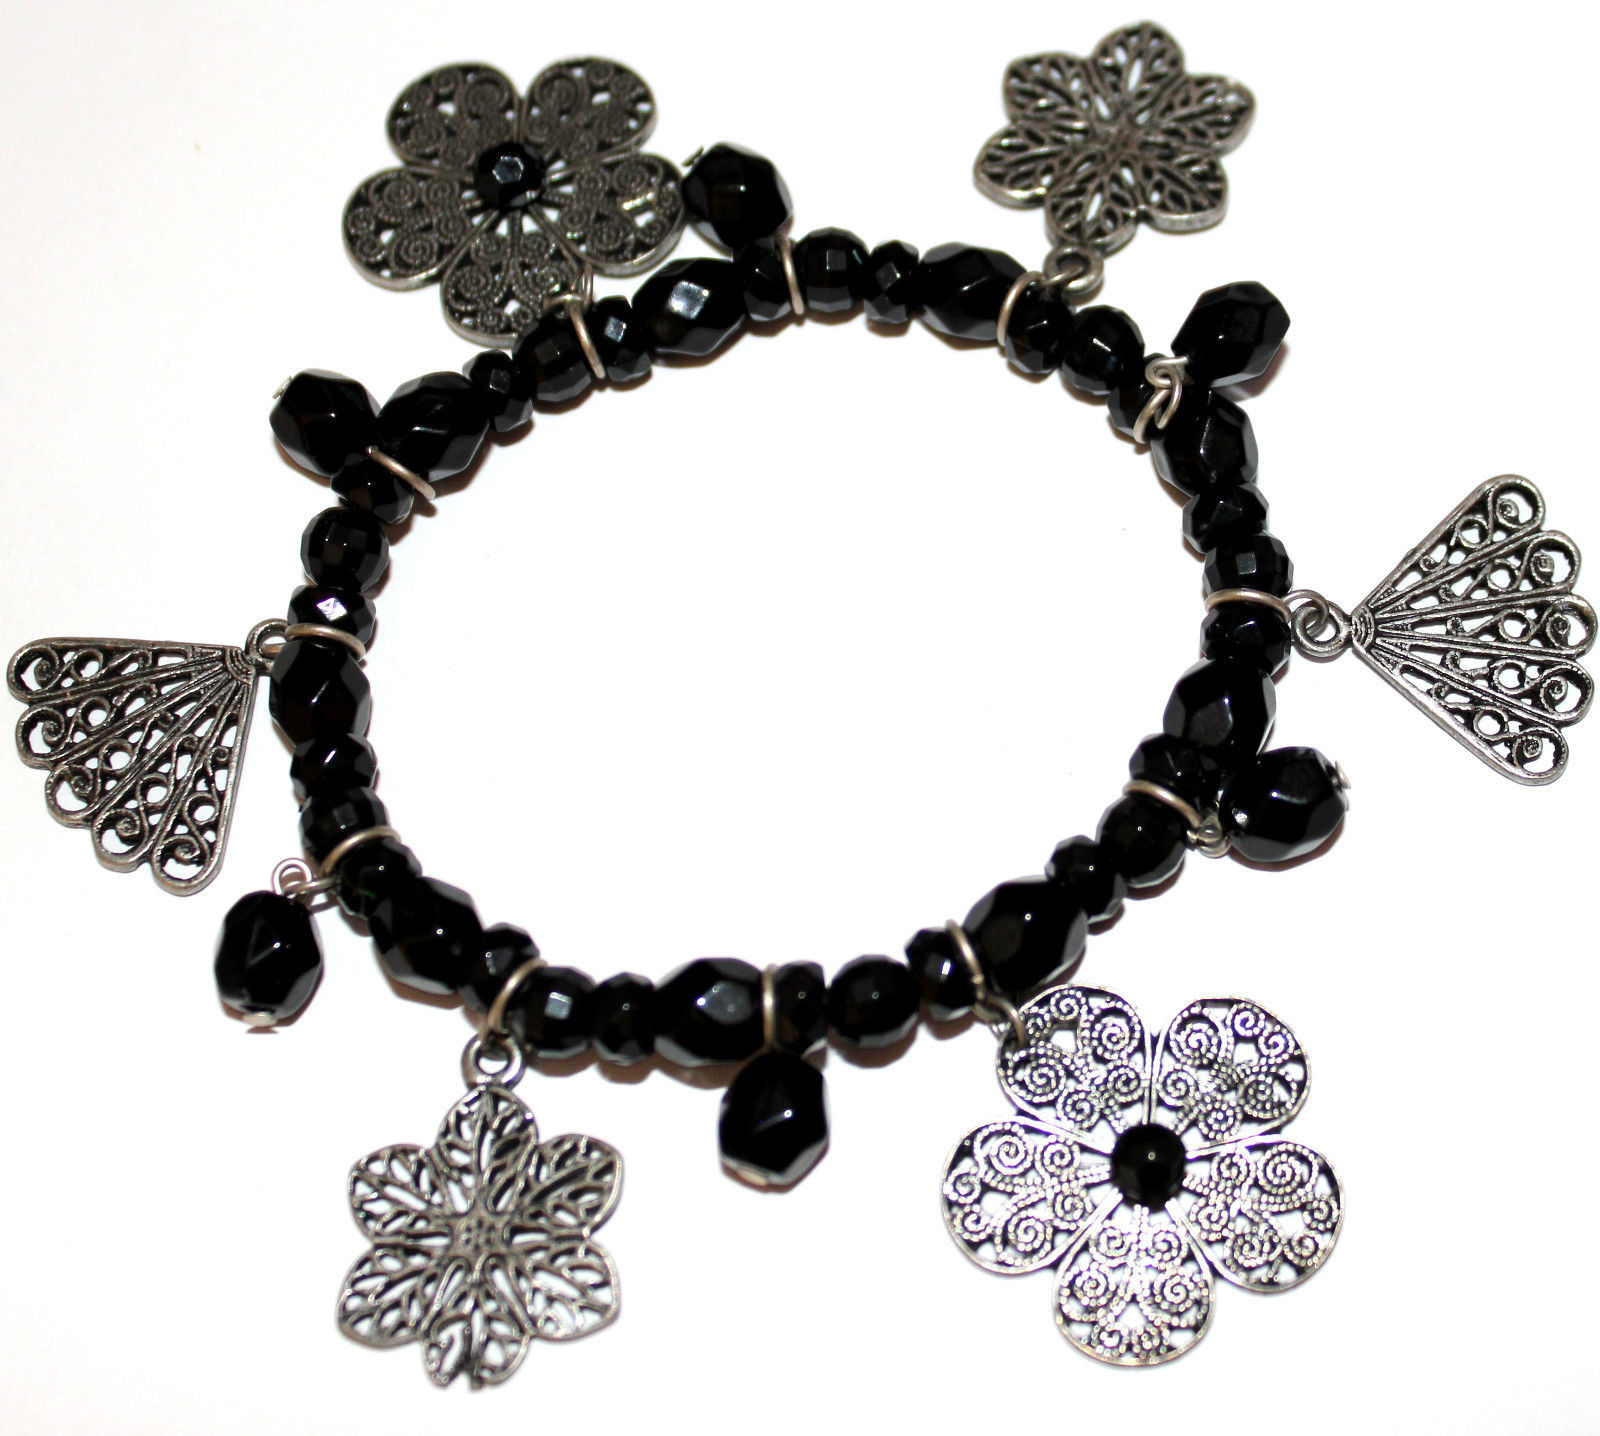 Primary image for Ladies Black Acrylic Beaded Fan Vintage Flower Floral Filigree Stretch Bracelet